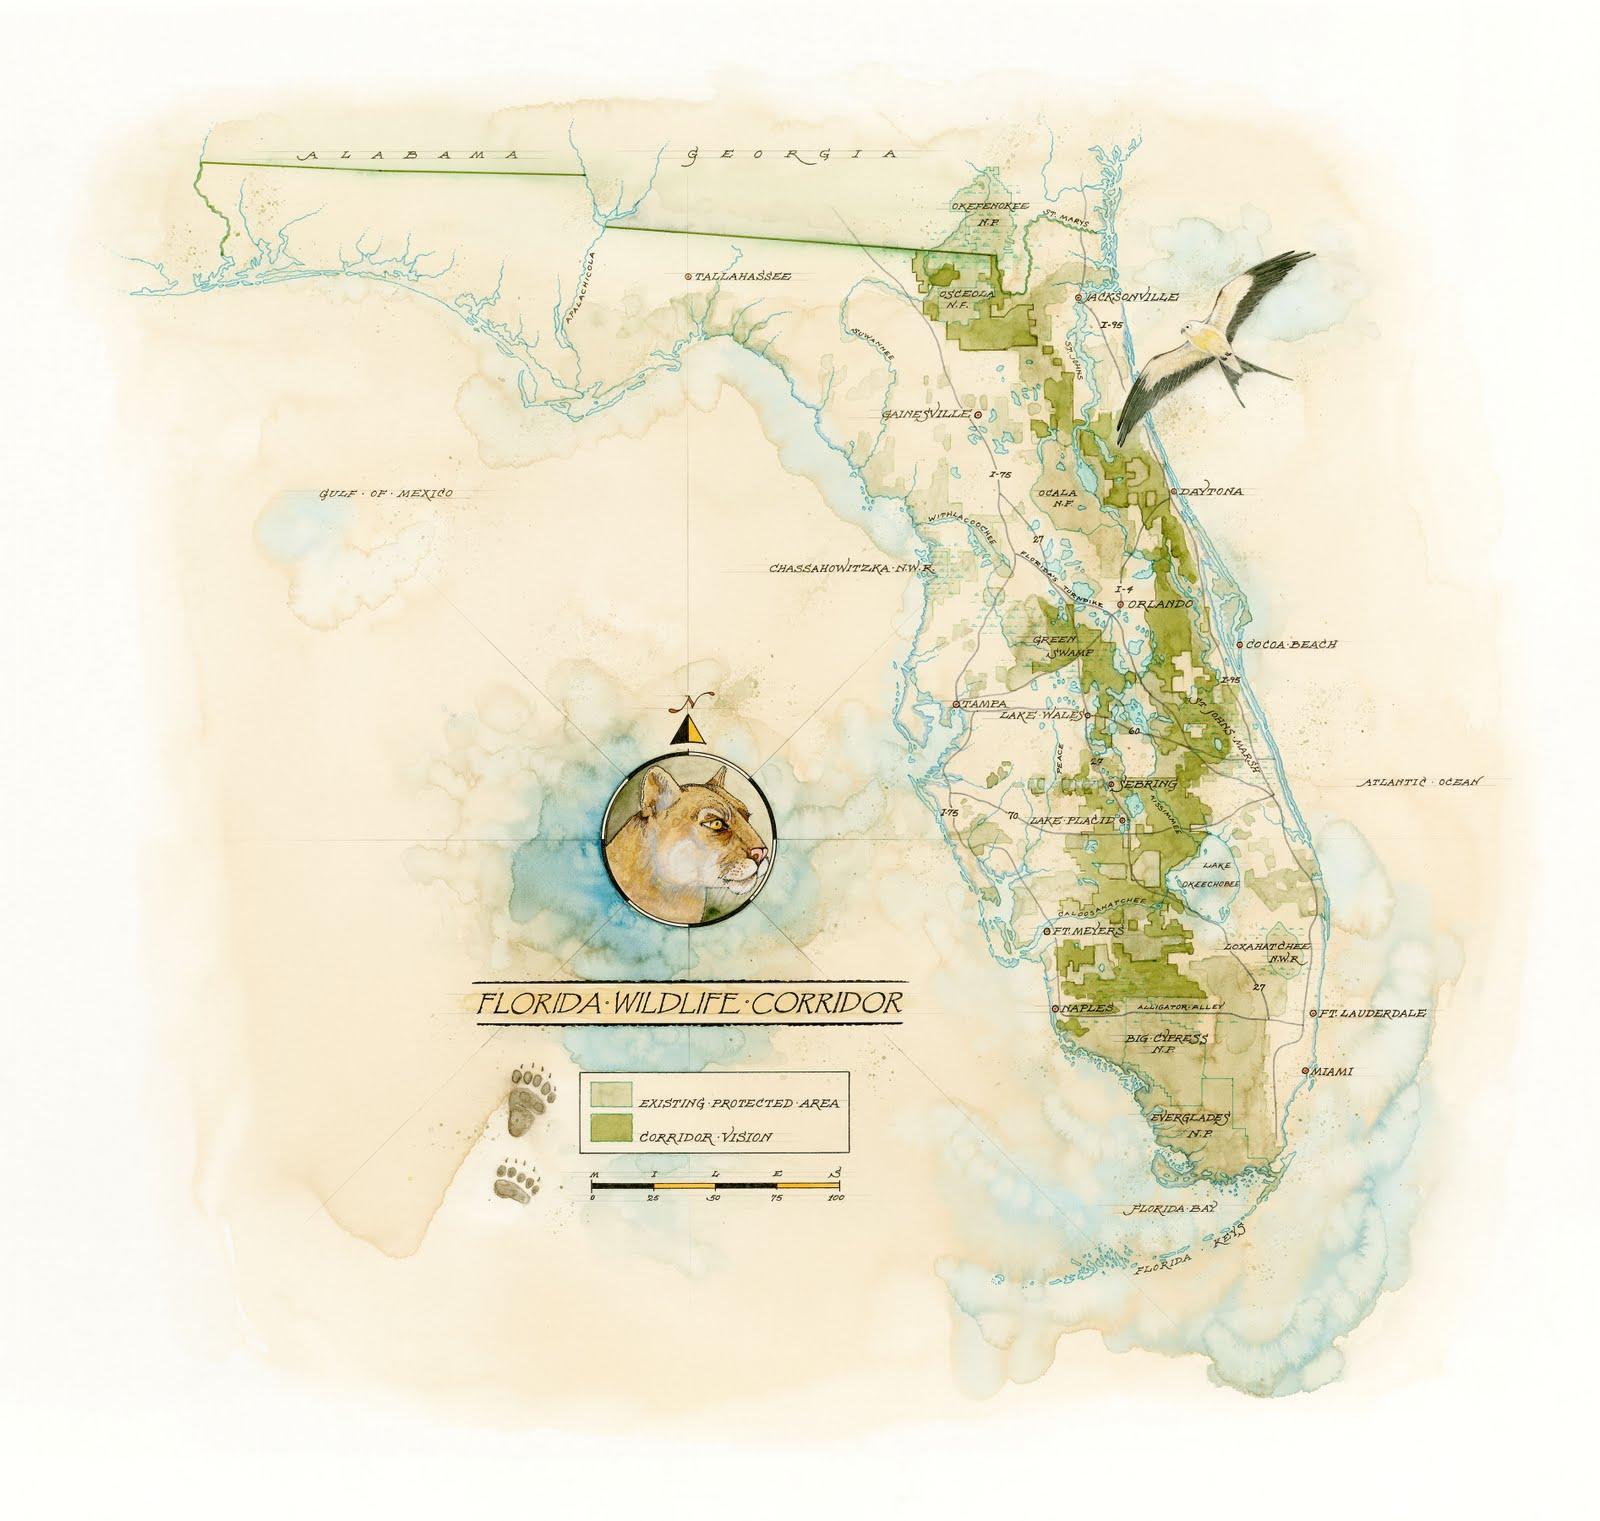 Florida Wildlife Corridor by Mike Reagan